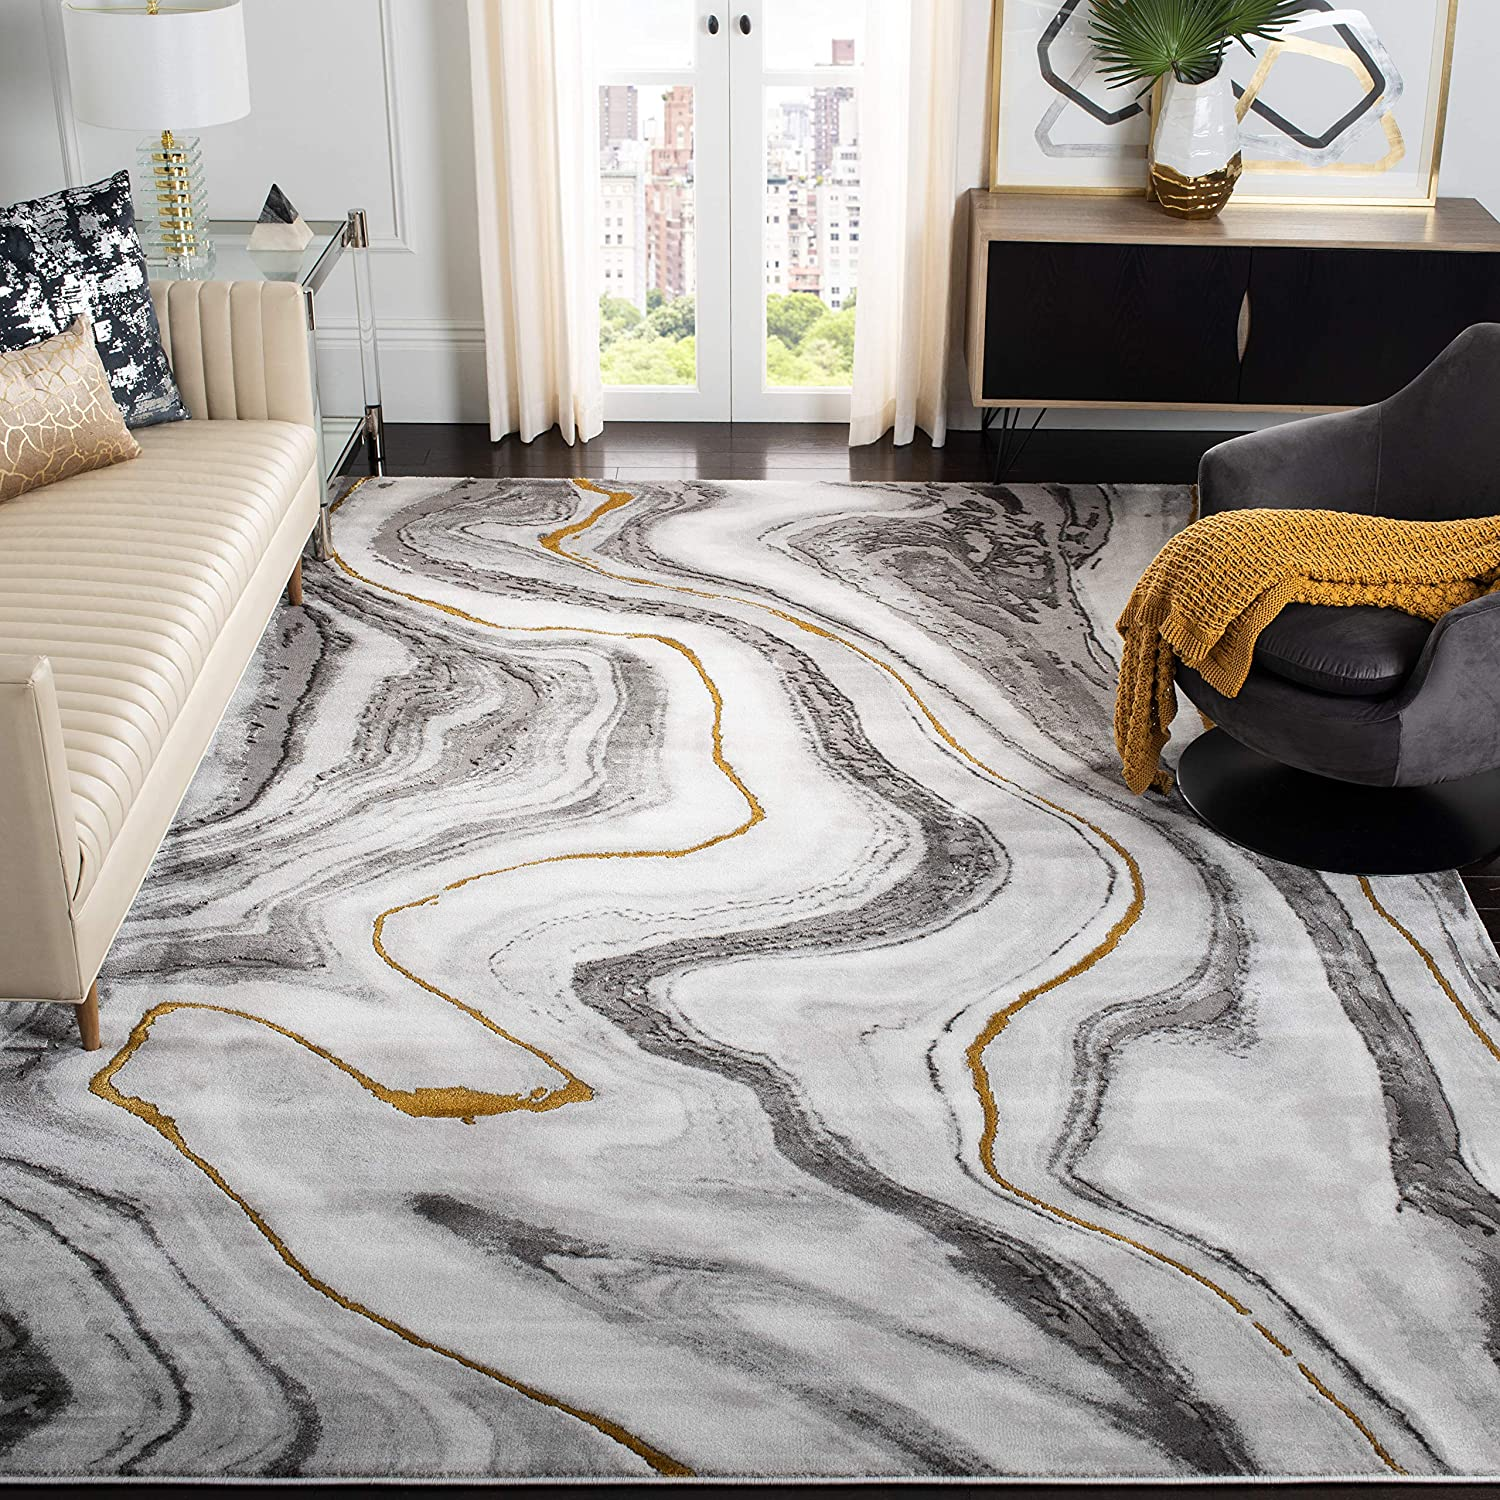 Safavieh Craft Collection CFT819F Modern Abstract Non-Shedding Stain Resistant Living Room Bedroom Area Rug, 8' x 10', Grey / Gold